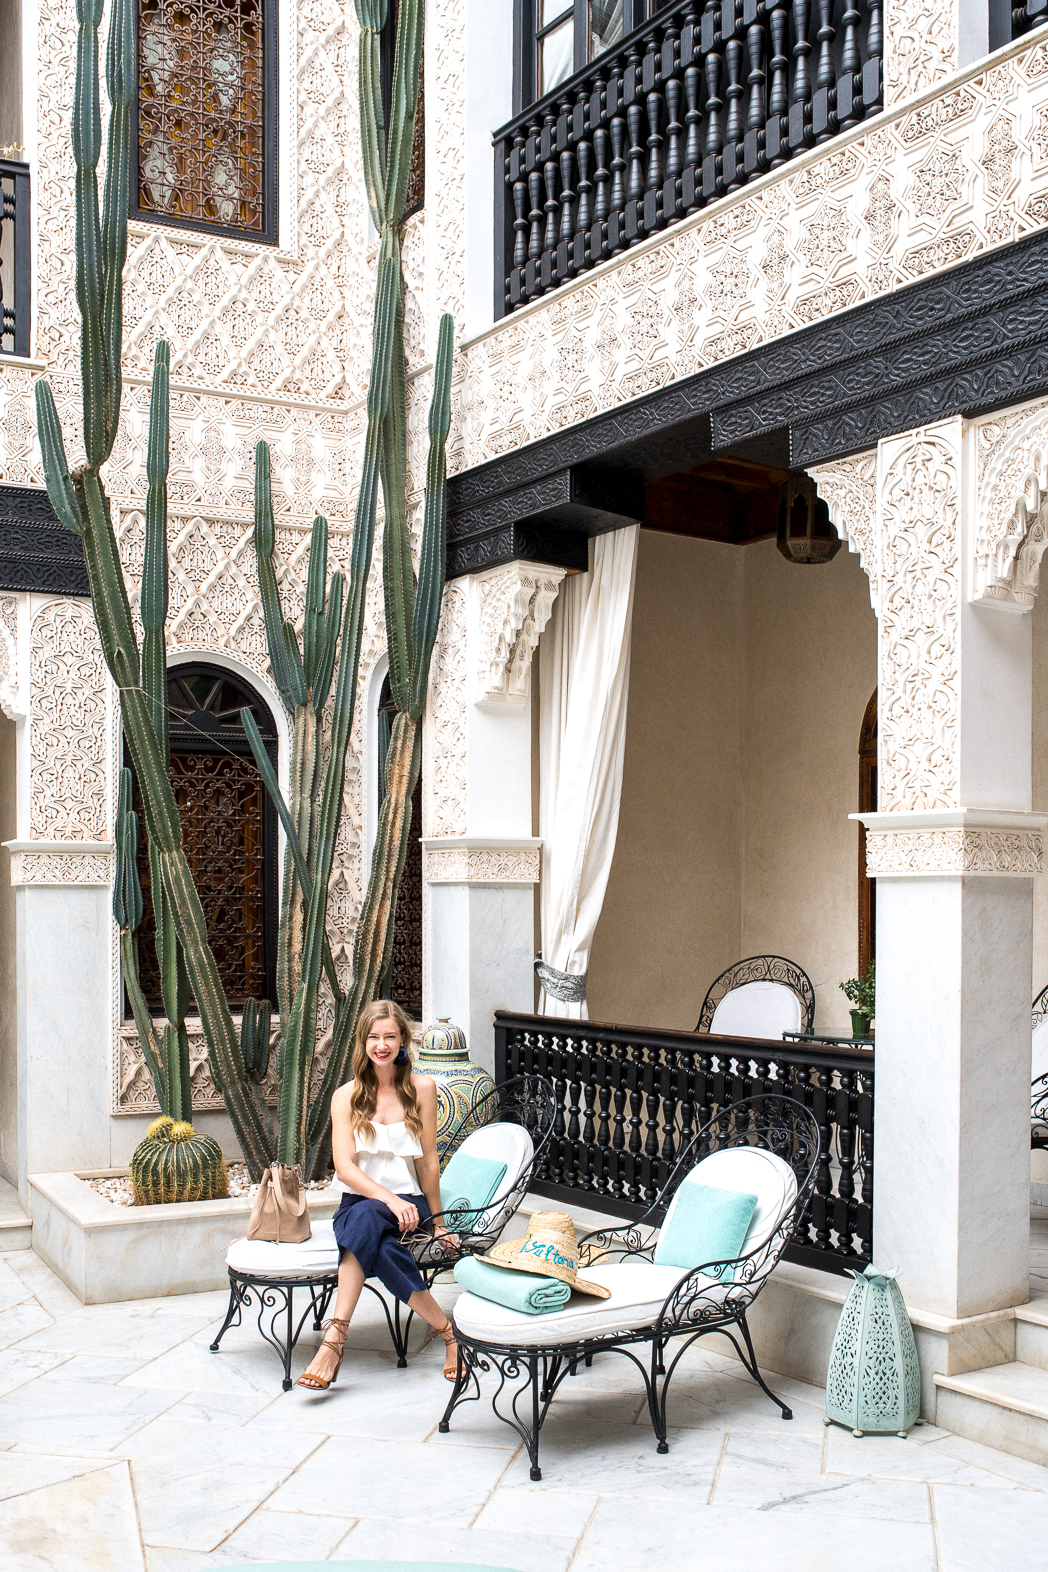 STACIE FLINNER La Sultana Marrakech City Guide-88.jpg